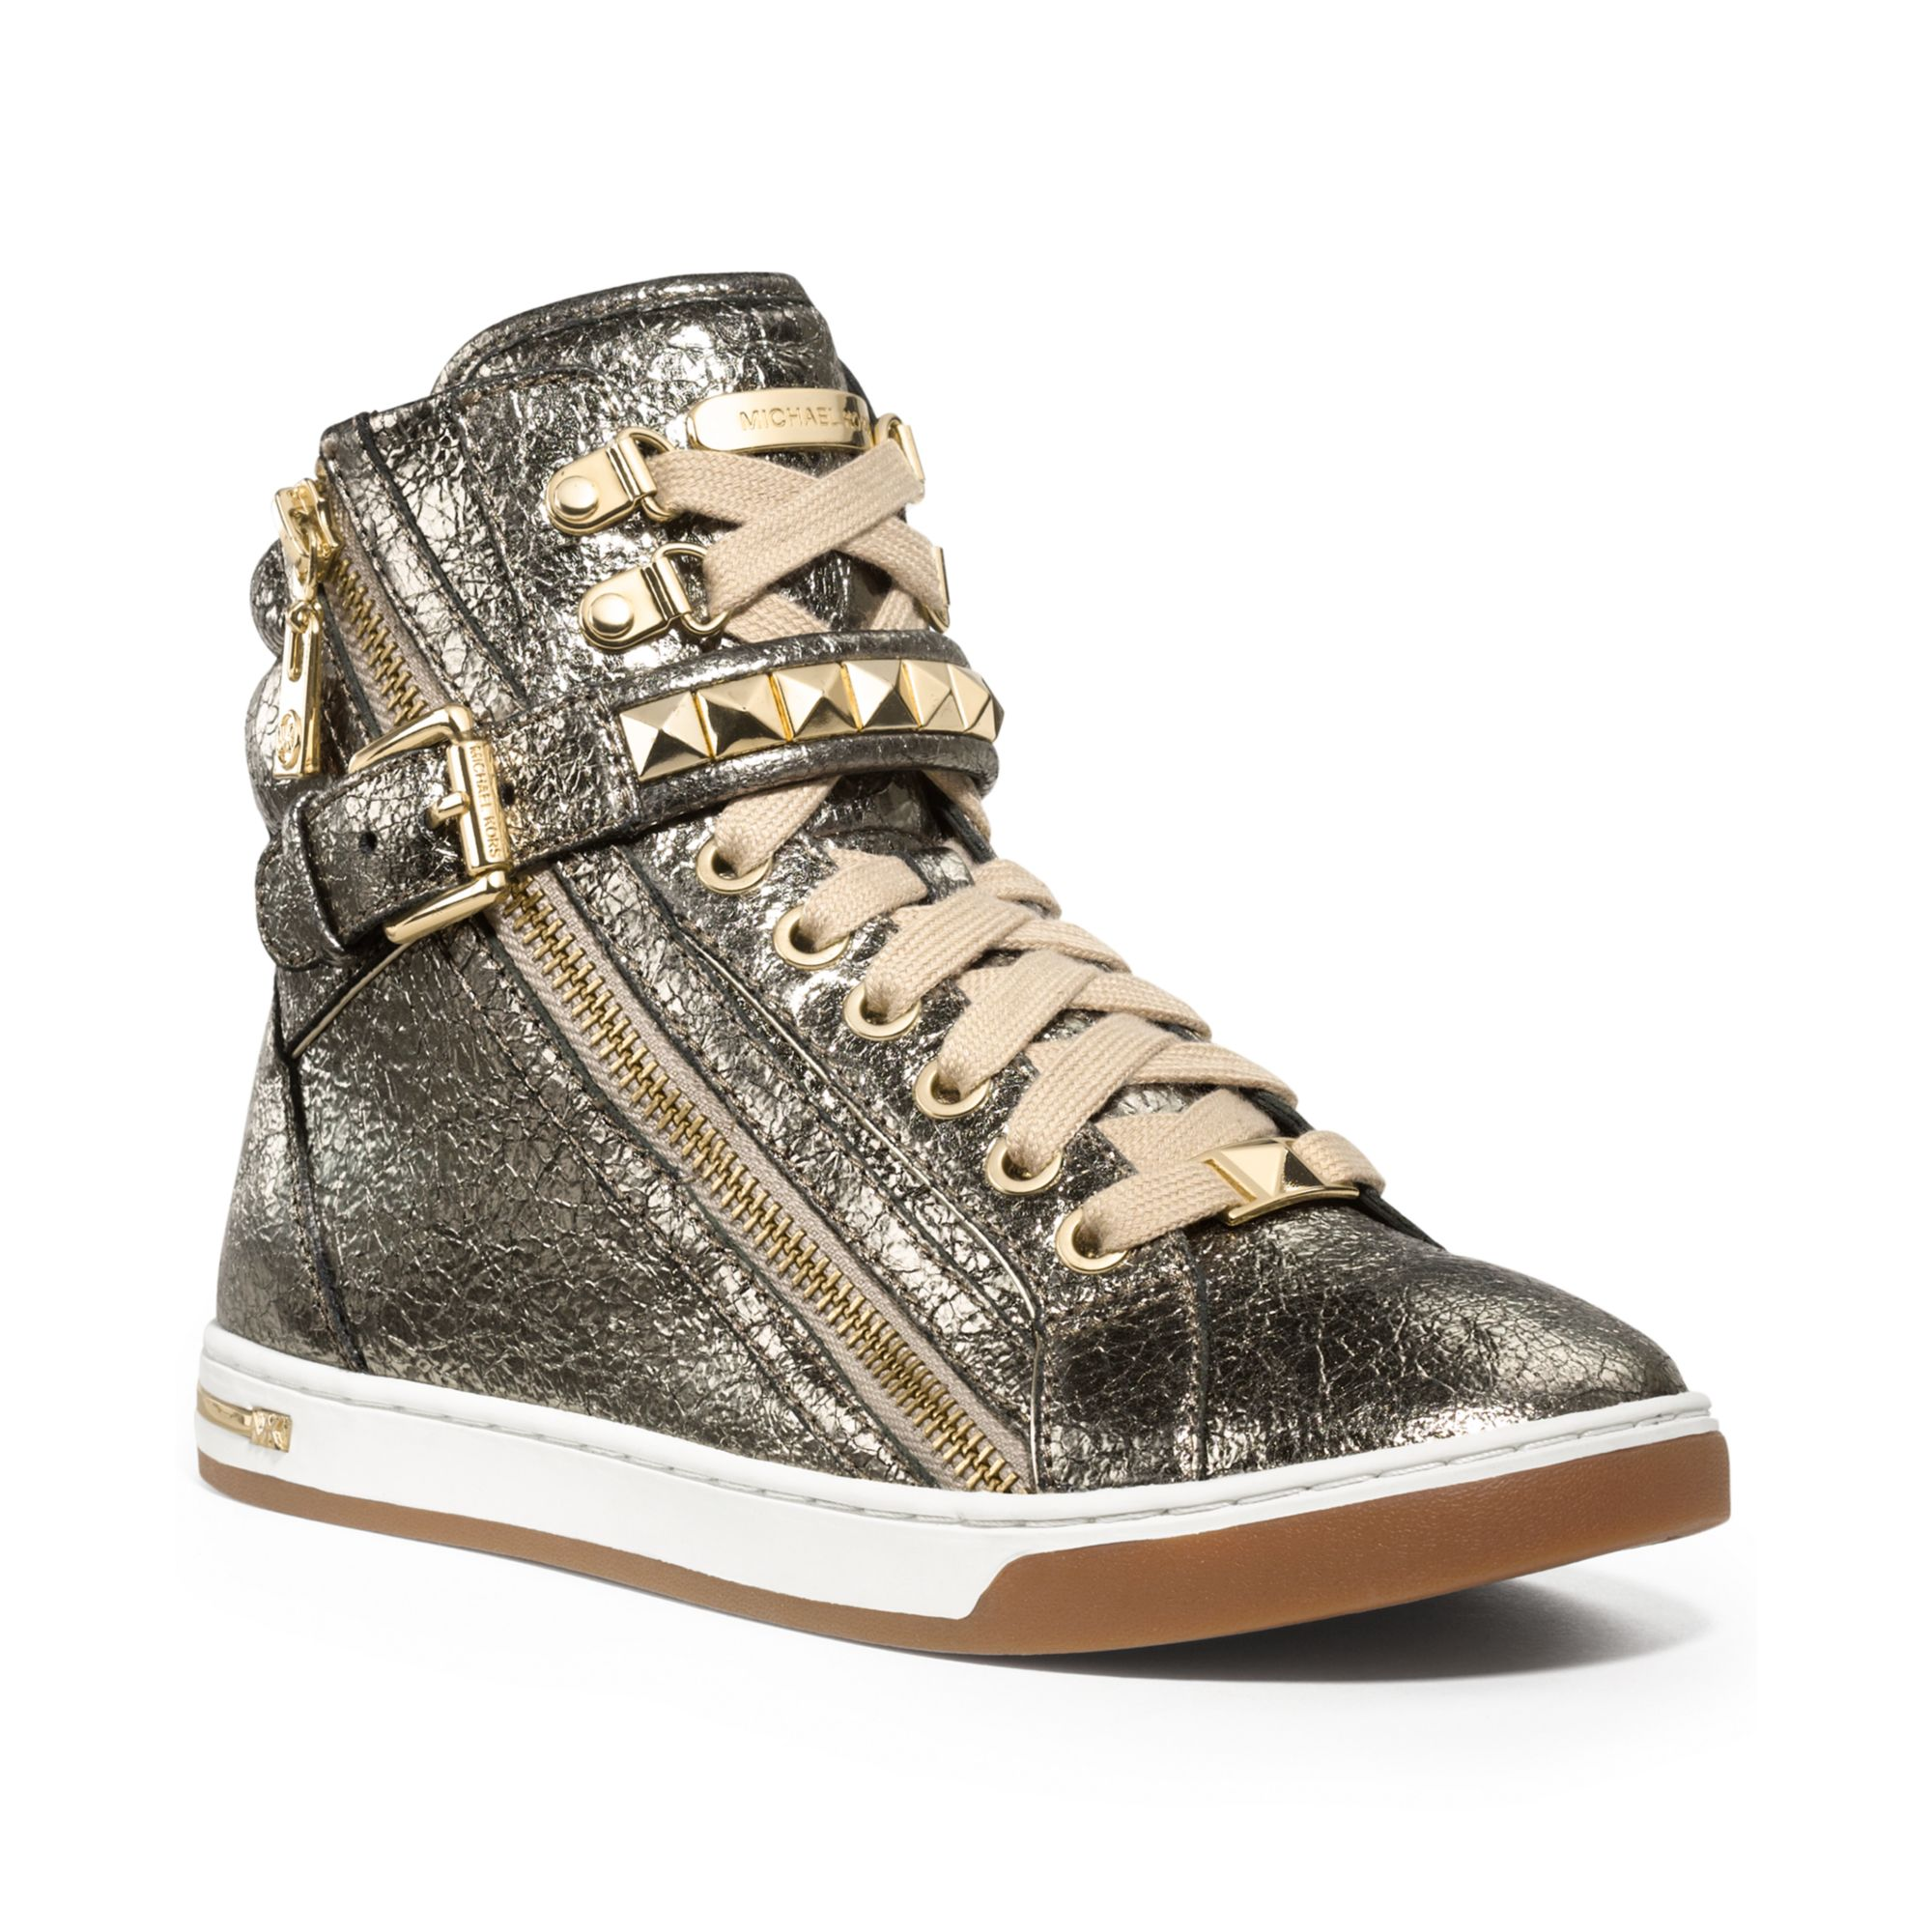 michael kors michael glam studded high top sneakers in gold gunmetal crackle metallic lyst. Black Bedroom Furniture Sets. Home Design Ideas